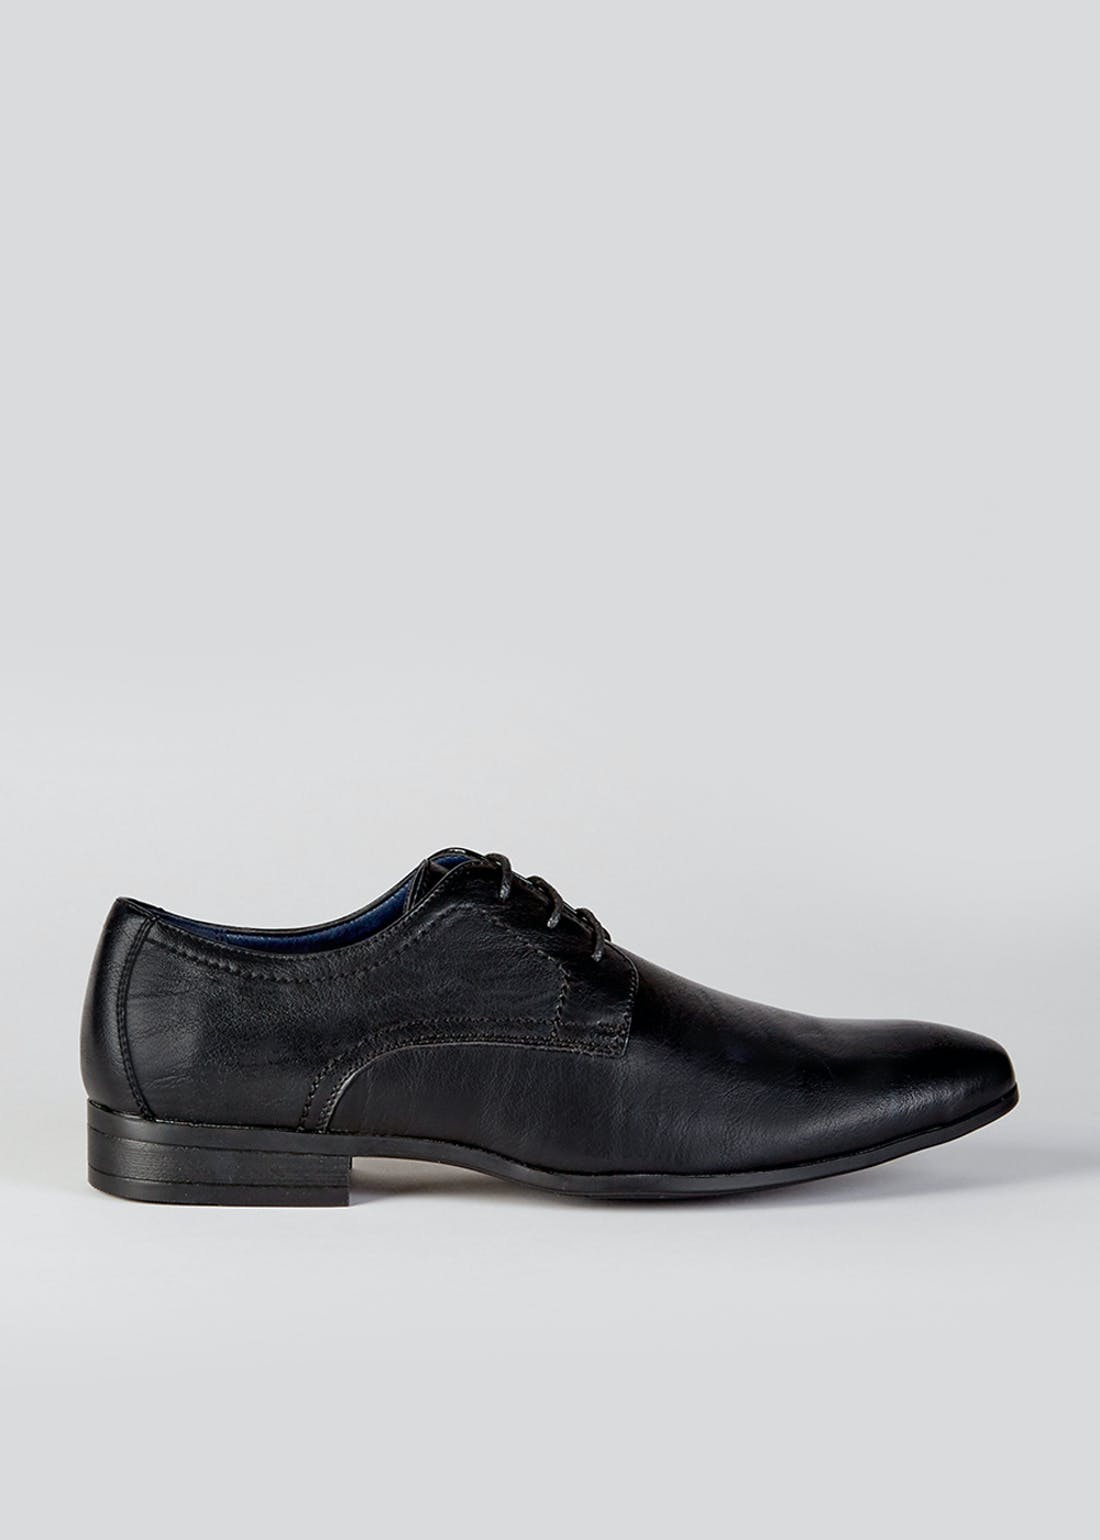 Black Derby Lace Up Shoes